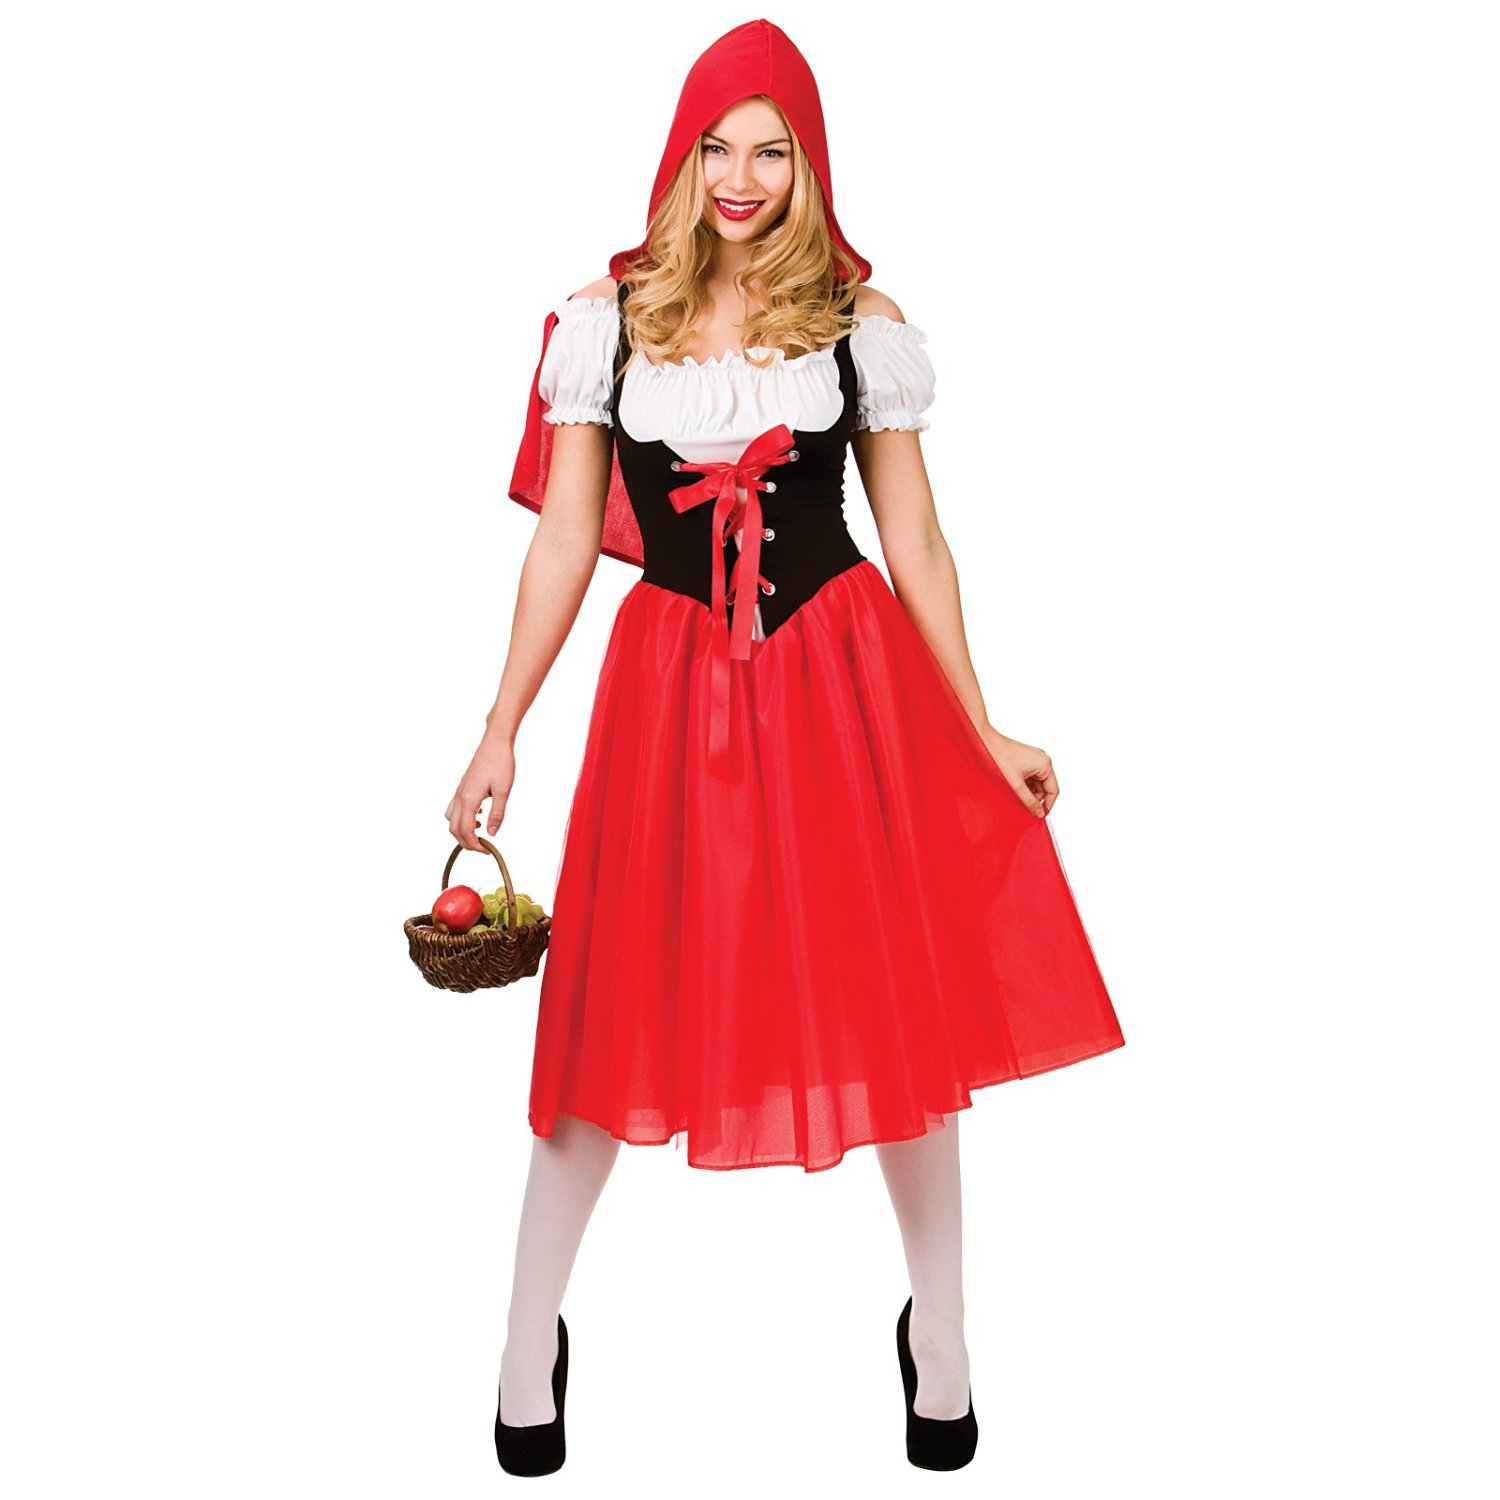 Ladies Red Riding Hood costume ef2163 (wicked)